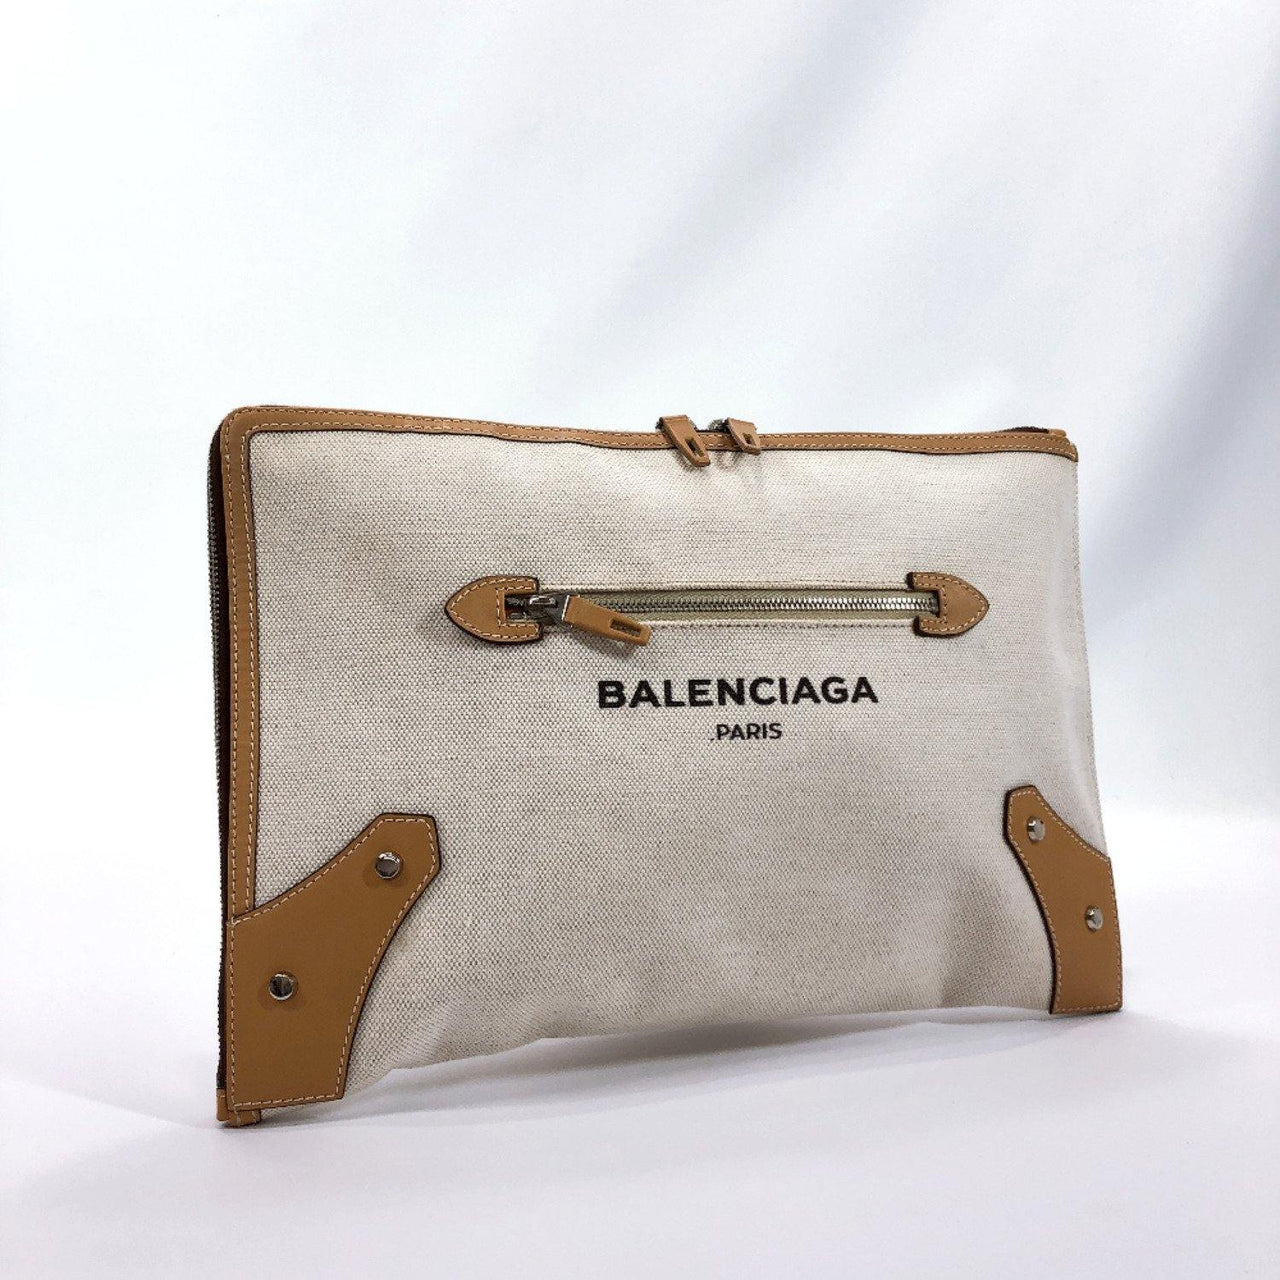 BALENCIAGA Clutch bag 419994 L-shaped fastener Cotton canvas/leather beige Ivory unisex Used - JP-BRANDS.com